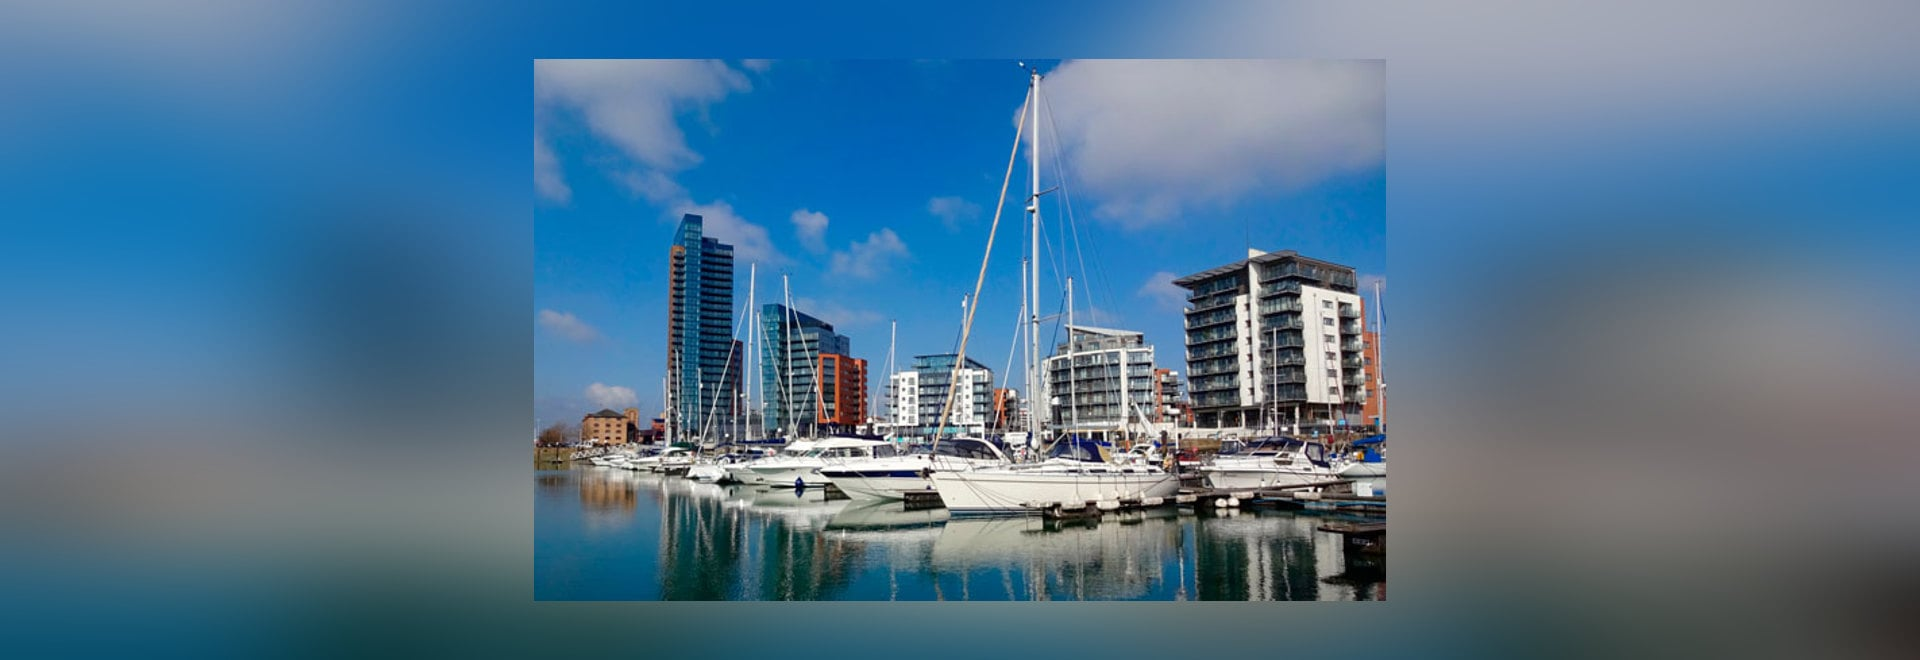 Ocean Village Marina is the finish line for the MDL Marinas charity bike ride challenge